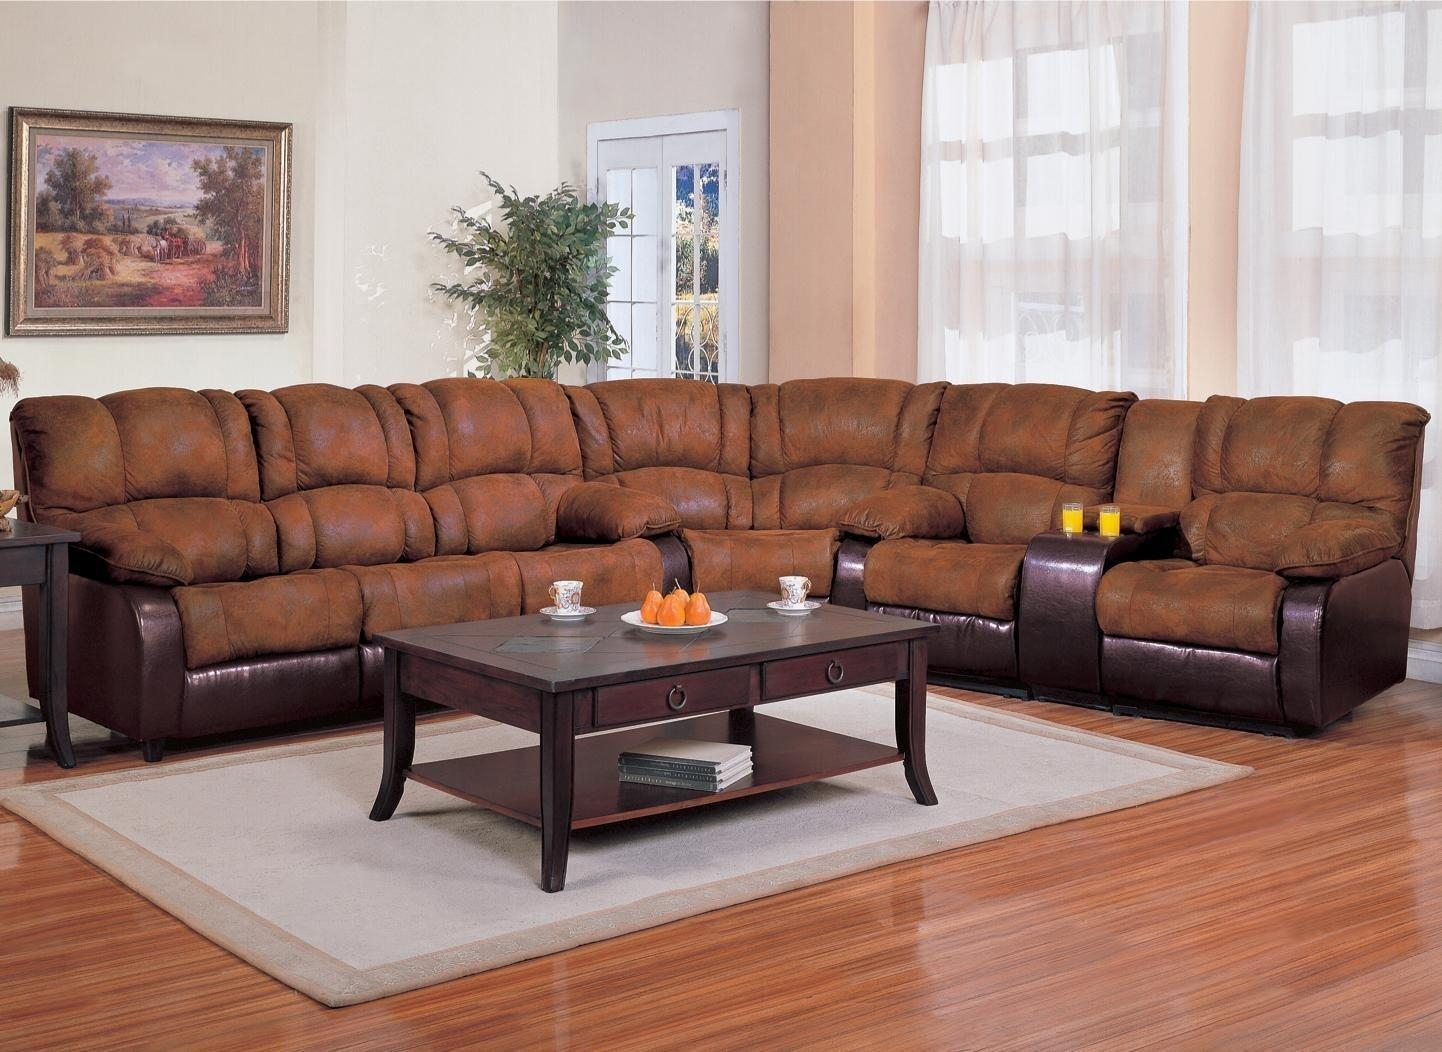 Furniture & Rug: Fancy Sectional Sleeper Sofa For Best Home Regarding Sectional With Recliner And Sleeper (Image 6 of 20)